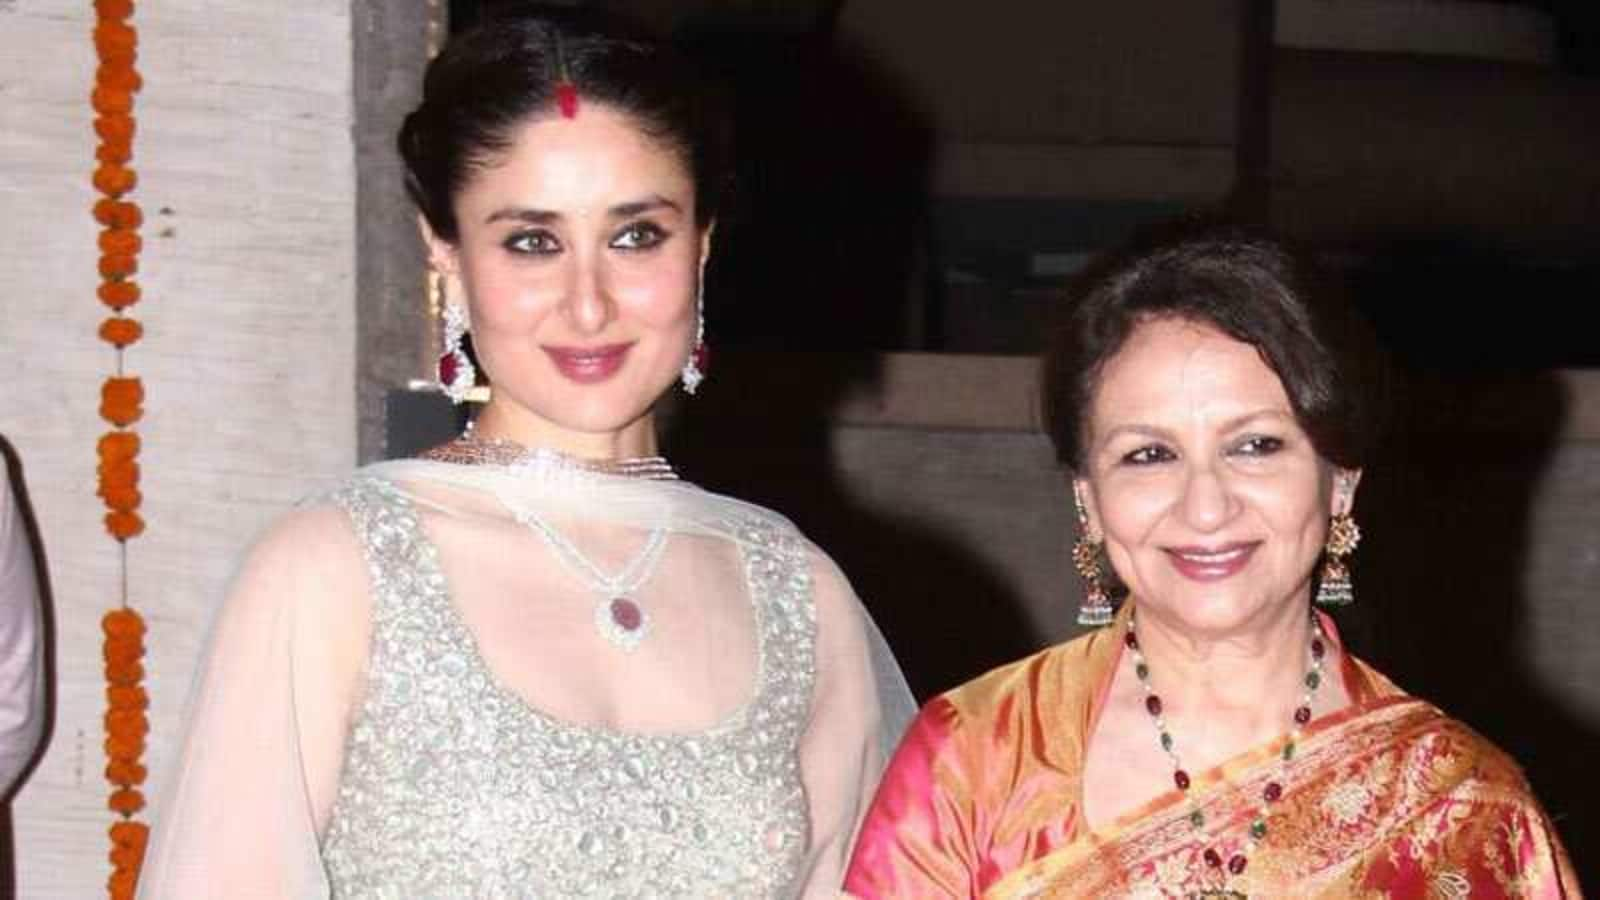 When Sharmila Tagore said Kareena Kapoor was 'just like my children' when Mansoor Ali Khan was in hospital - Hindustan Times